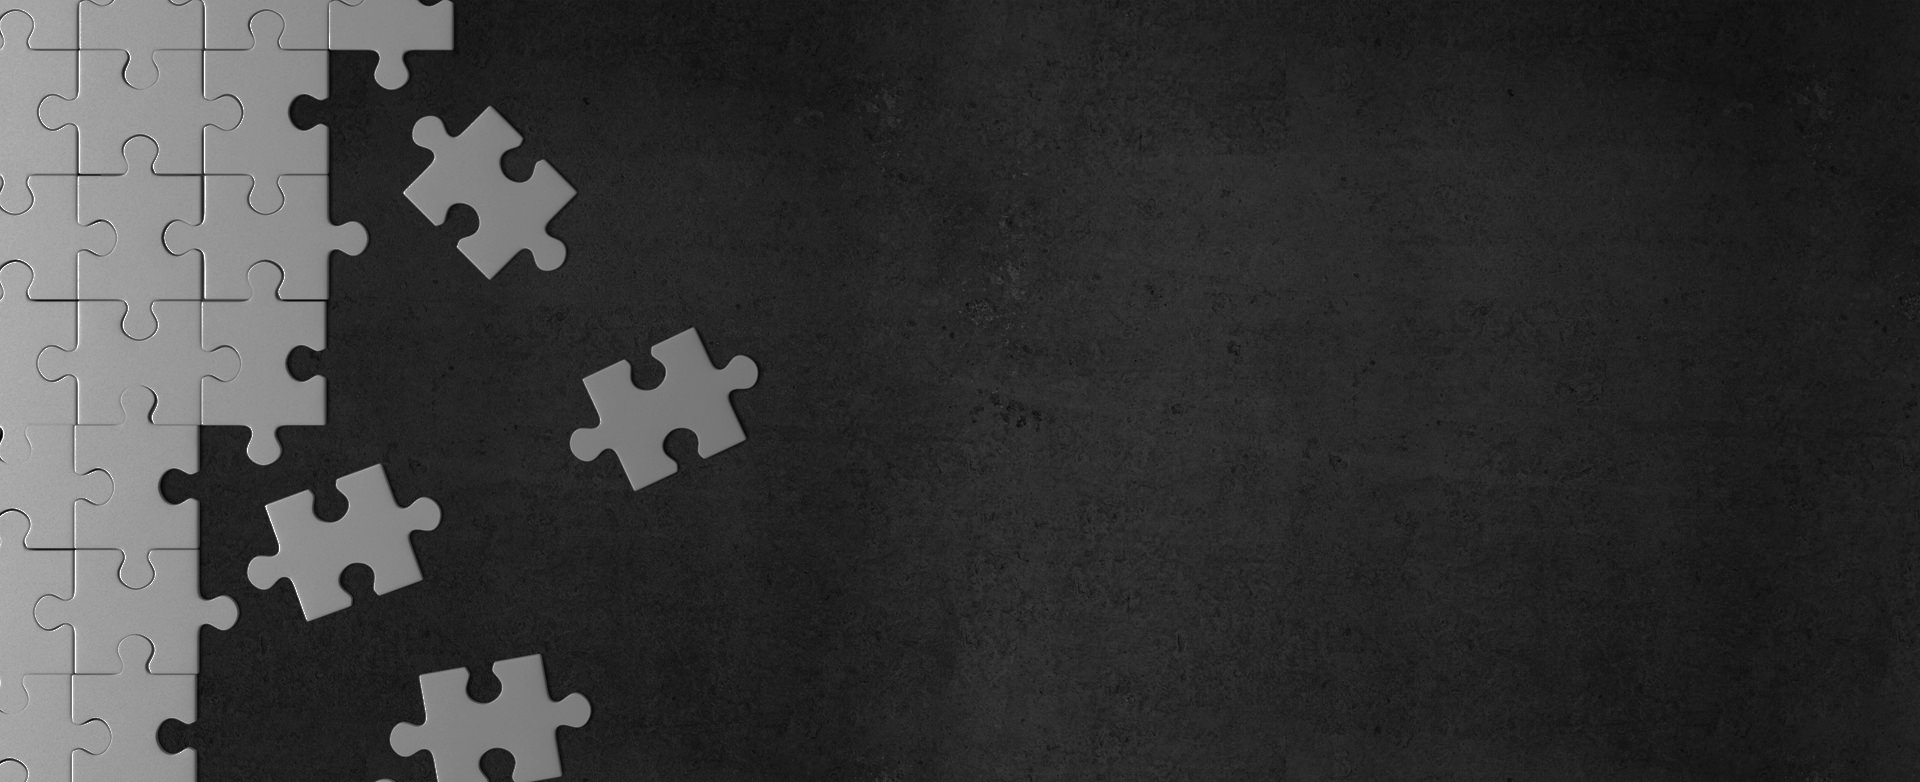 Our EMS implemention methodology solves the EHS puzzle.